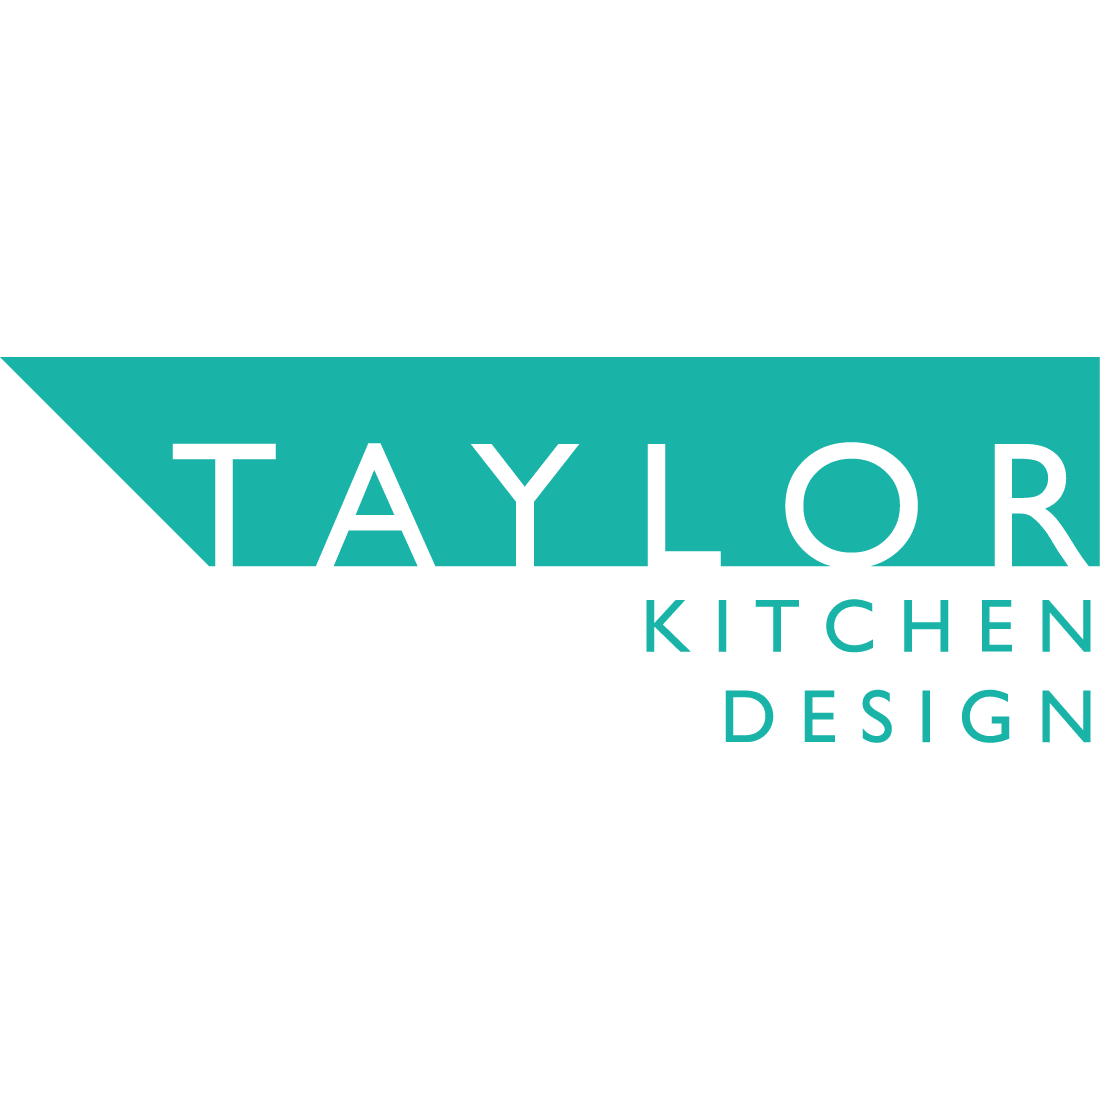 Taylor Kitchen Design - Lincoln, Lincolnshire  - 07772 213020 | ShowMeLocal.com